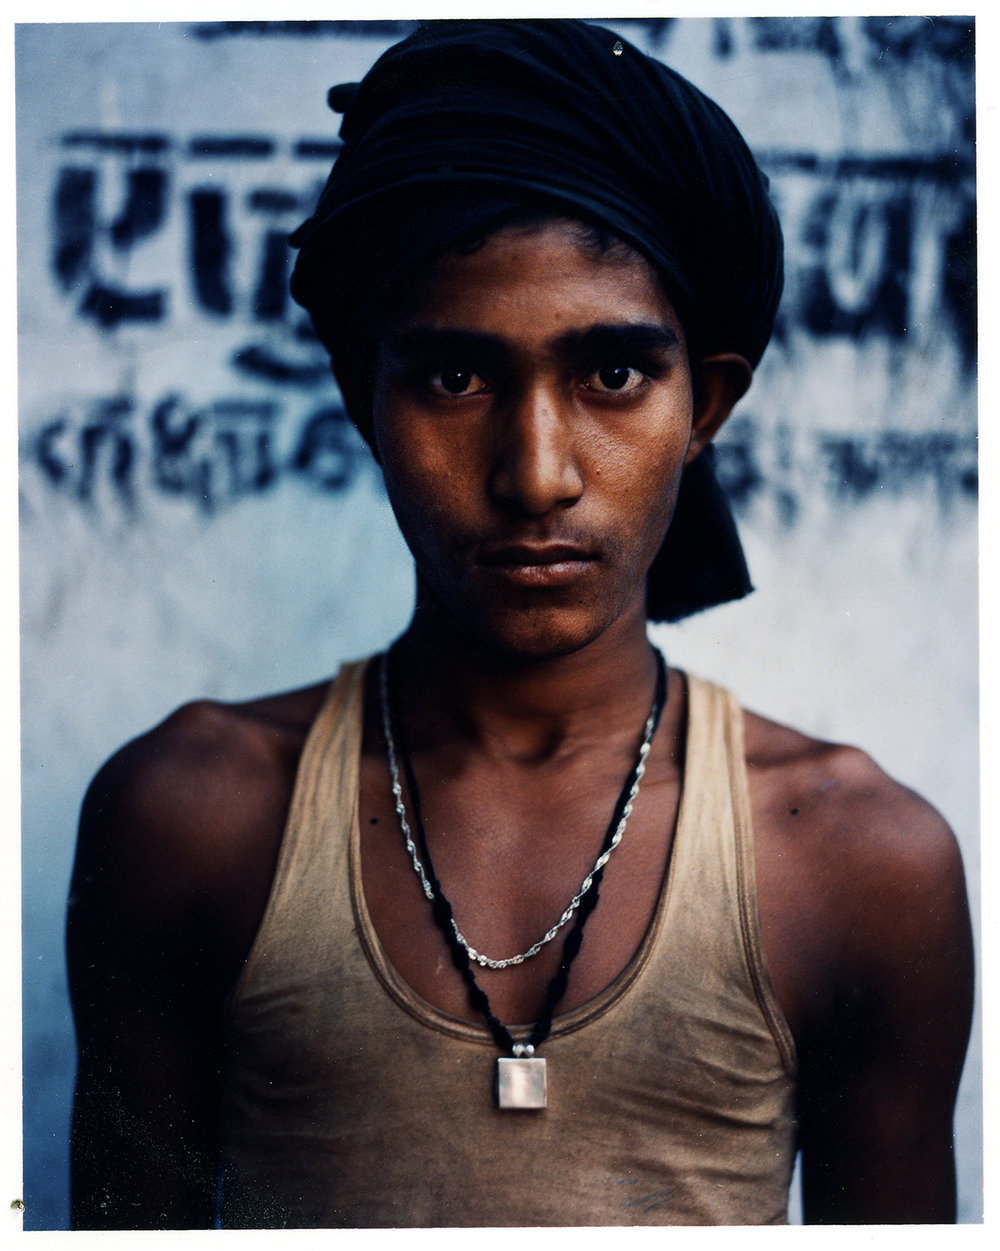 Polaroid - Street Vendor - Mumbai, India